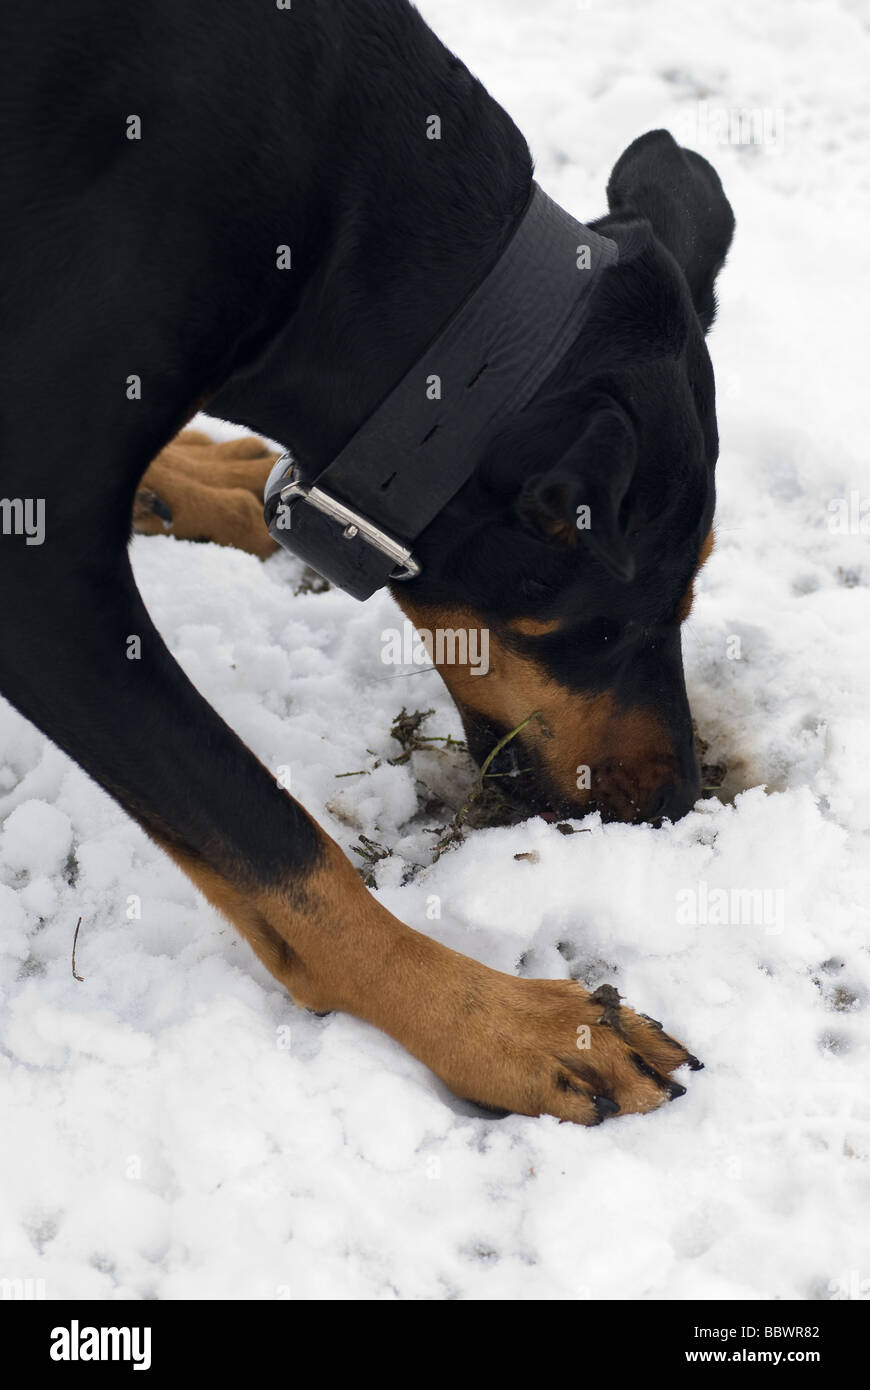 a black doberman dog digging for grass roots on a snowy background - Stock Image